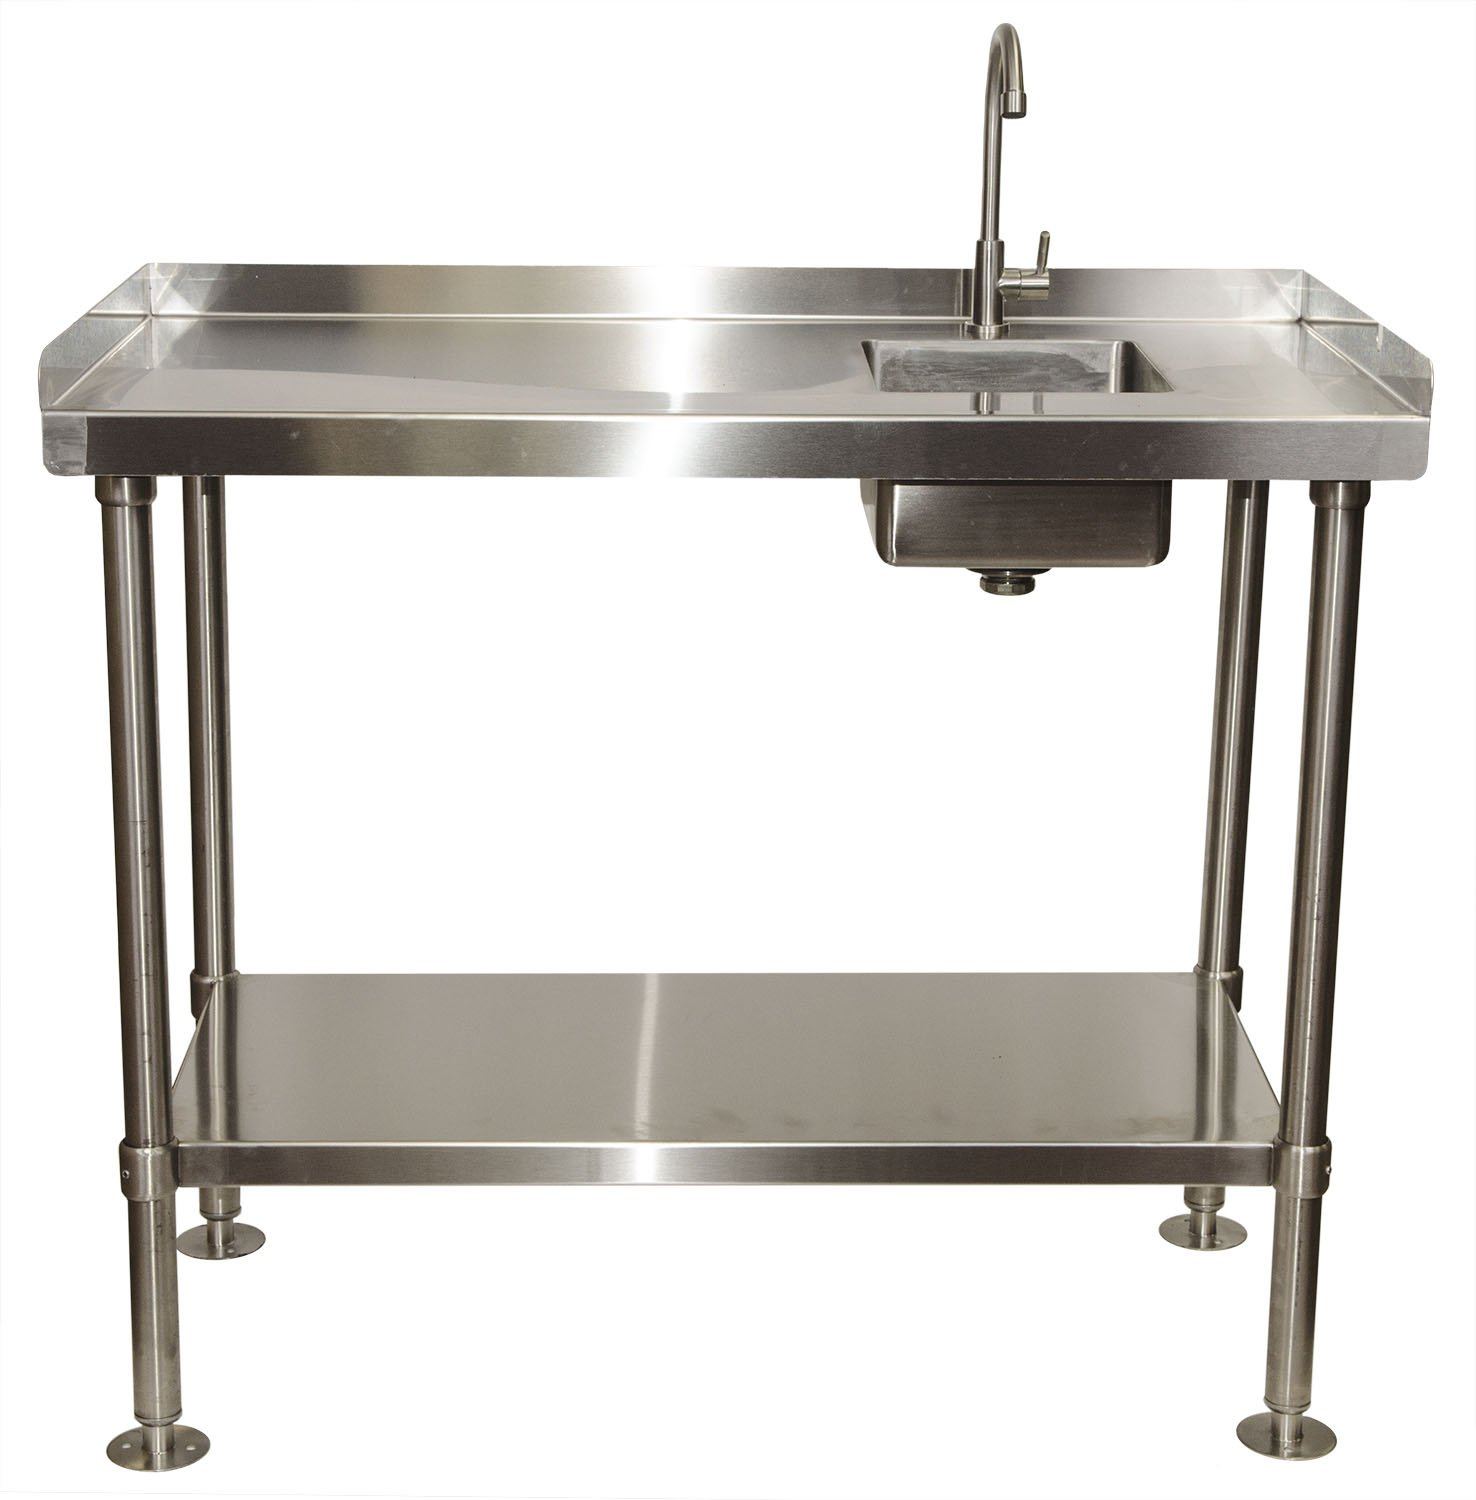 Rite Hite Stainless Steel Fillet Cleaning Table Made Jpg 1476x1500 Stainless  Steel Fish Cleaning Station